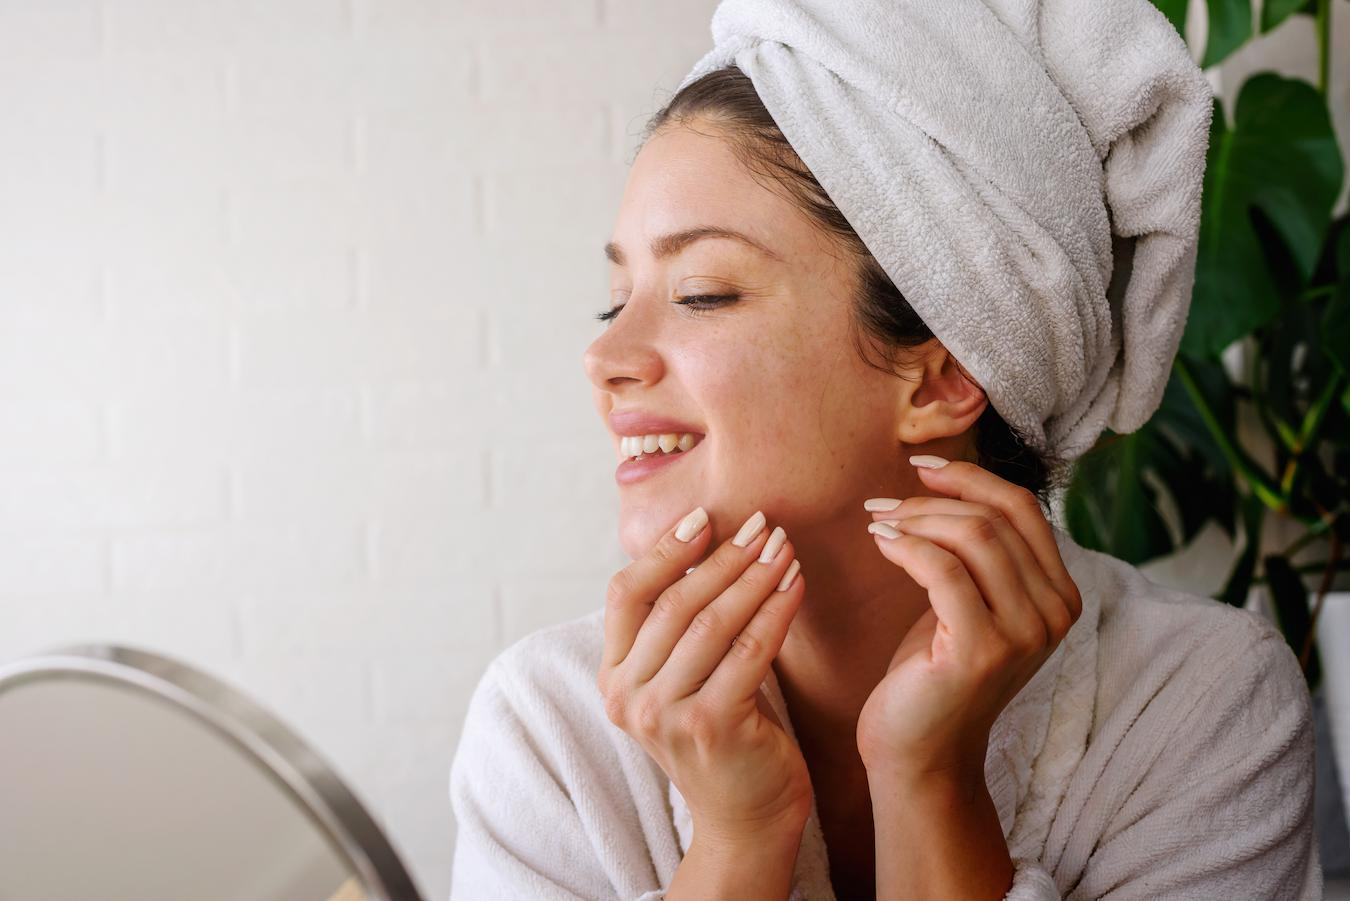 Exfoliation is an important part of minimizing your pores and keeping them clean